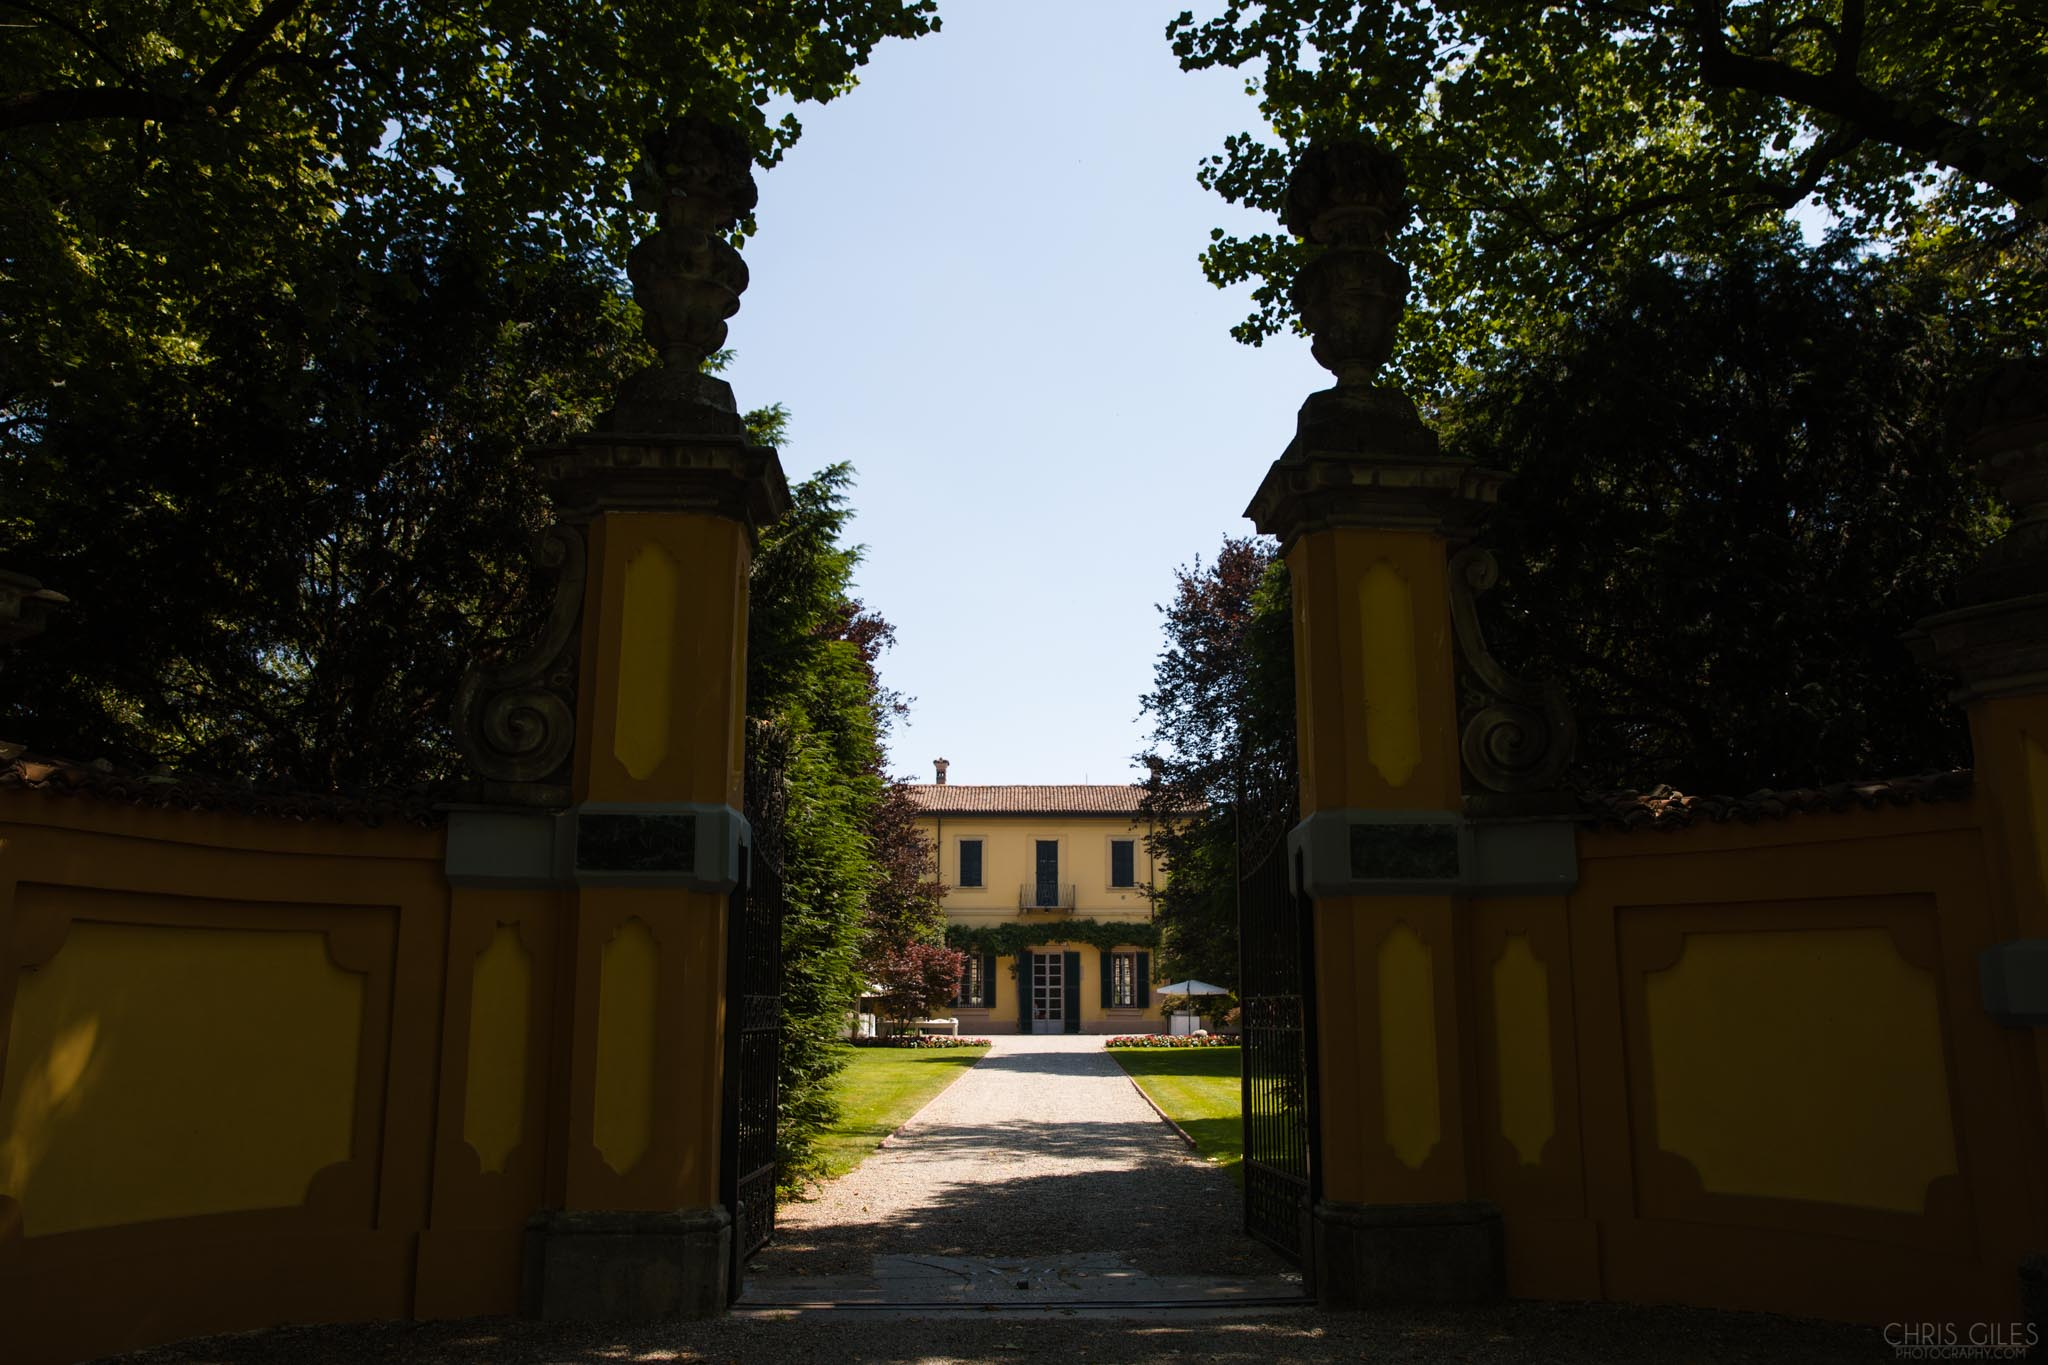 The entrance to The Villa Negri in Italy